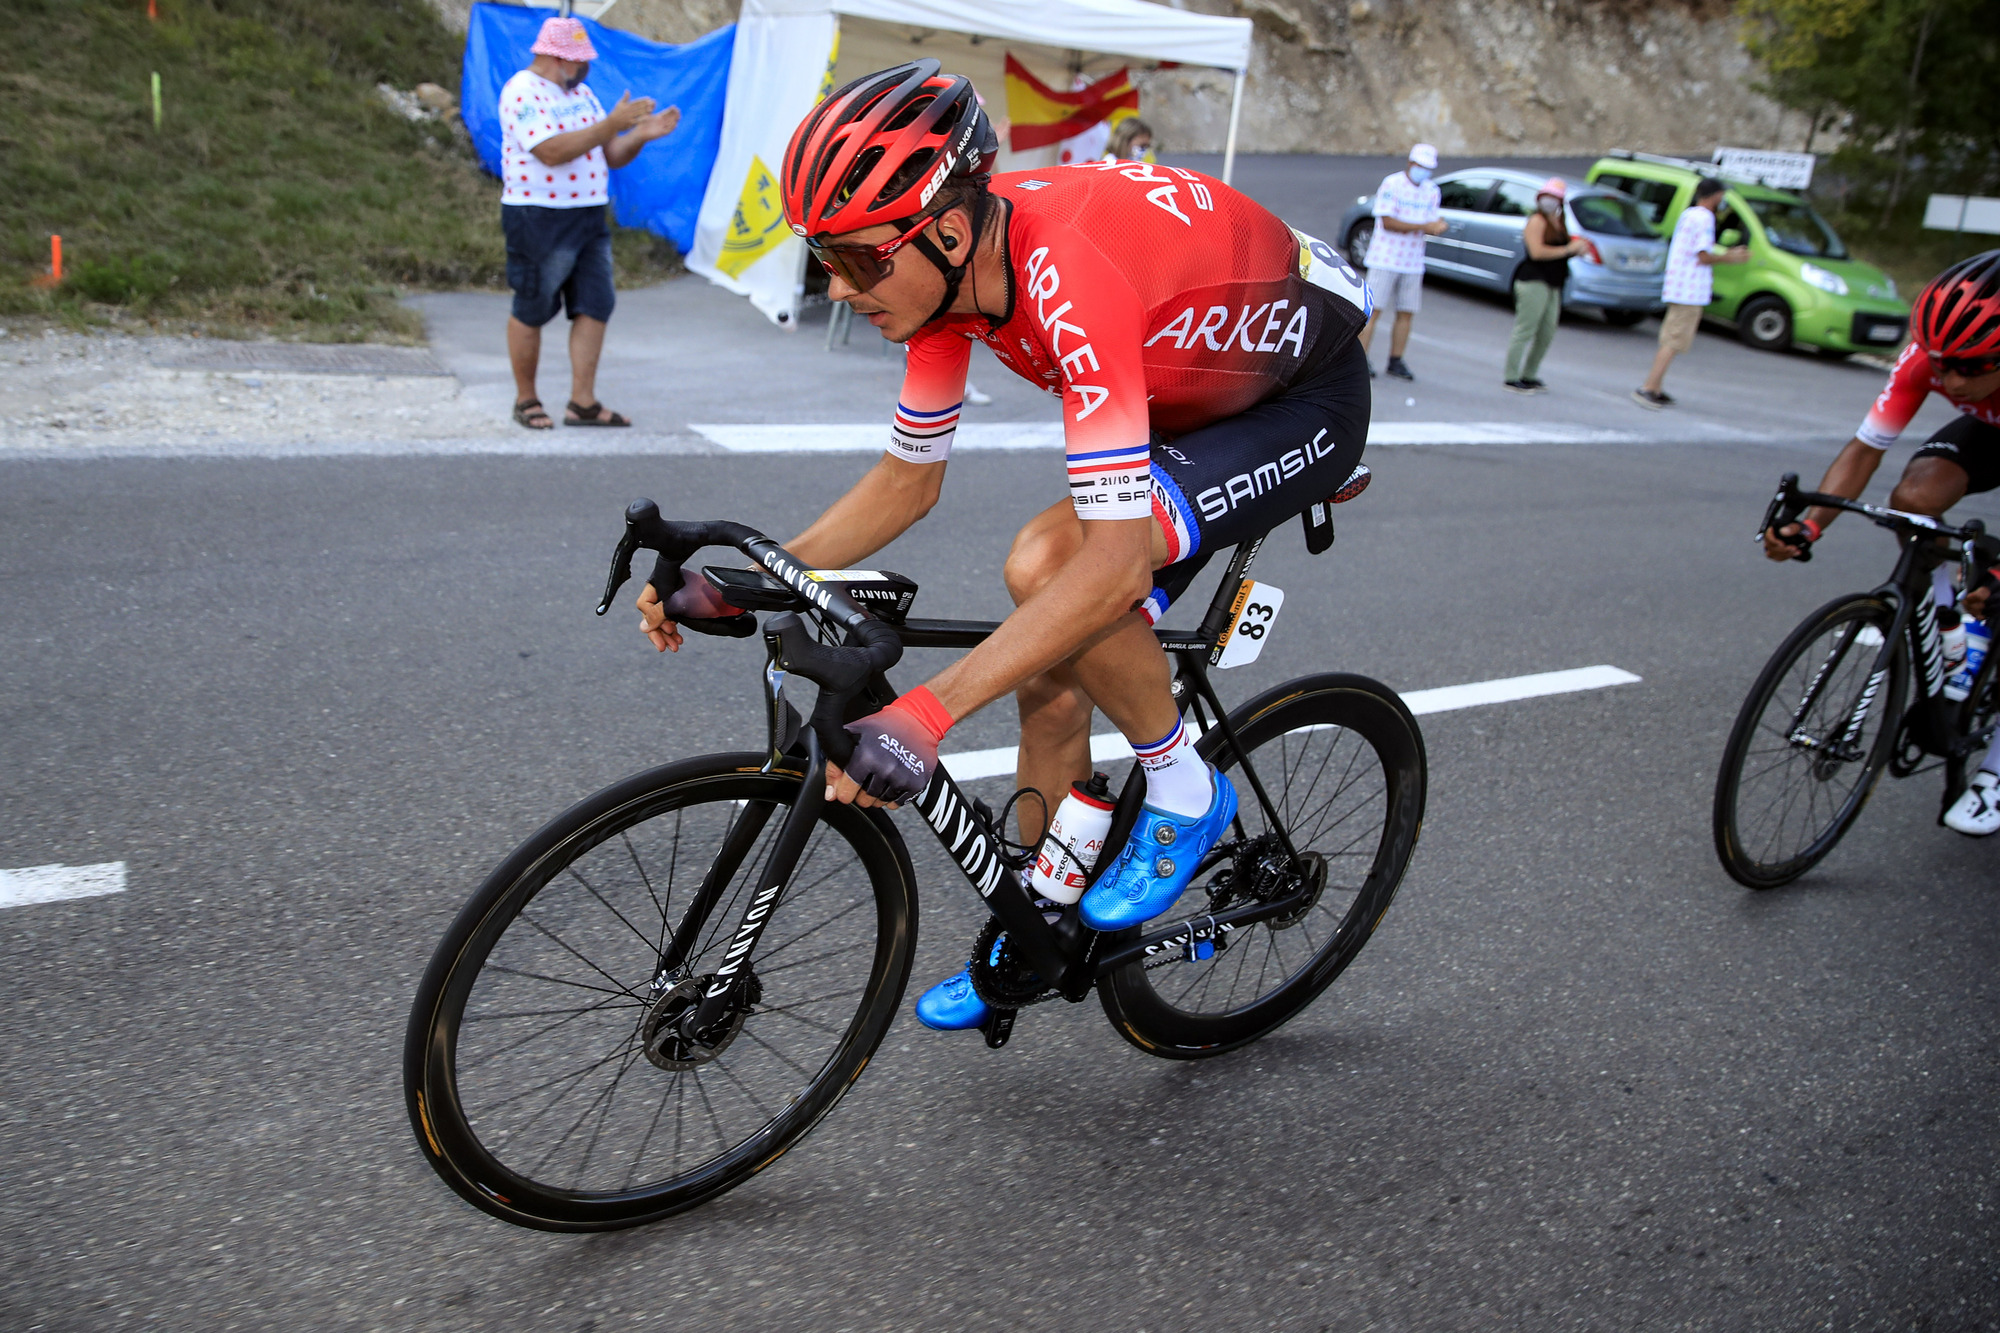 Tour de France 2021: Barguil eyes yellow jersey opportunity at Mûr